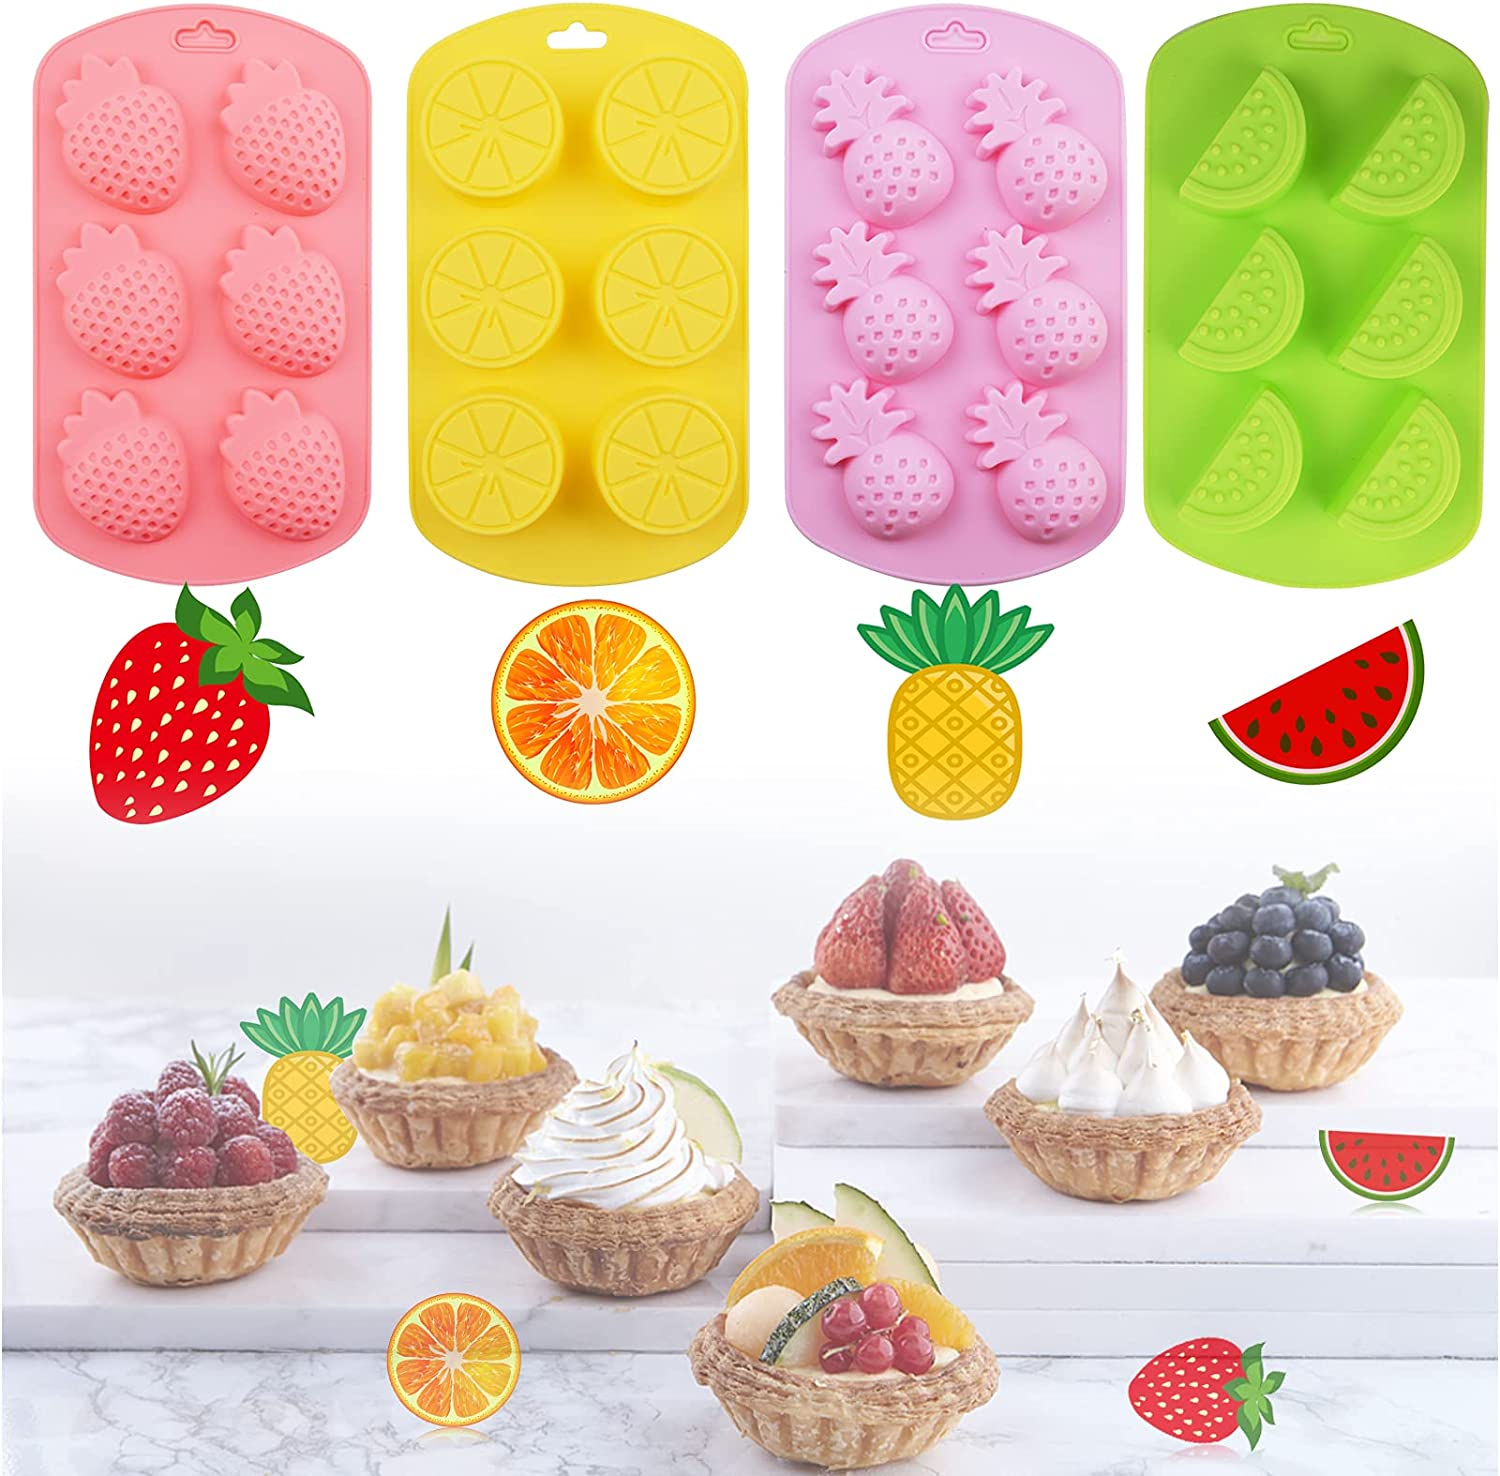 4Pcs Fruit Shaped Silicone Molds, Pineapple Lemon Watermelon Strawberry Chocolate Candy Molds Silicone Gummy Molds for Summer Ice Cubes Making Jelly Fondant Soap Pudding Cupcake Toppe Decorations